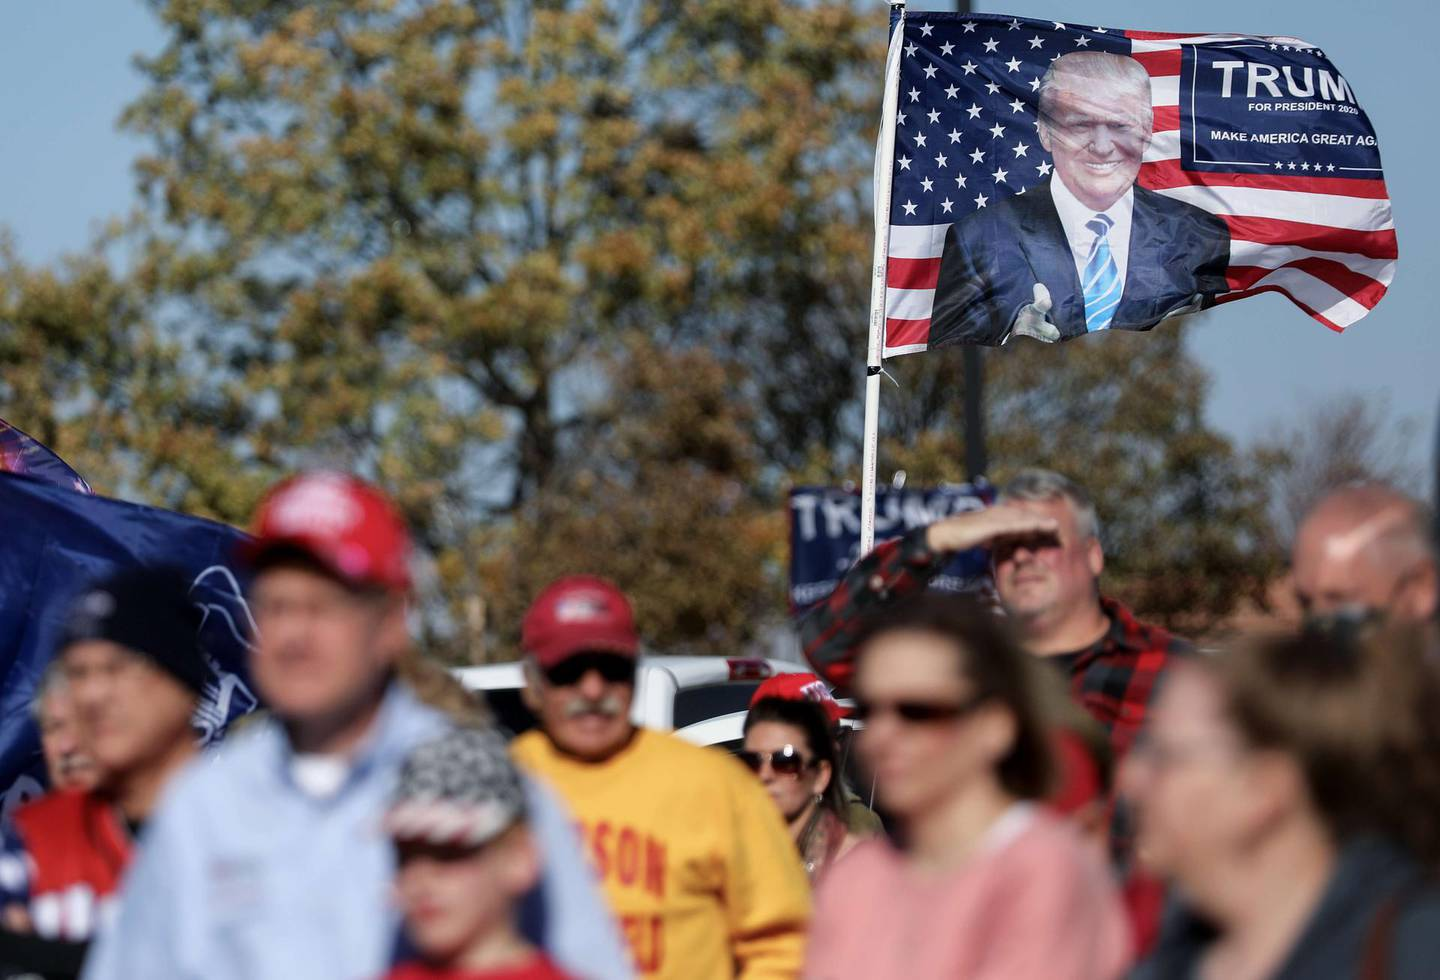 MADRID, IOWA - OCTOBER 31: A Donald Trump flag waves in the breeze as supporters of President Trump gather for a 'Trump Parade' in the battleground state of Iowa on October 31, 2020 in Madrid, Iowa. Democratic presidential nominee Joe Biden made a campaign stop in Des Moines yesterday with President Donald Trump scheduled to hold a rally in Dubuque on November 1.   Mario Tama/Getty Images/AFP == FOR NEWSPAPERS, INTERNET, TELCOS & TELEVISION USE ONLY ==